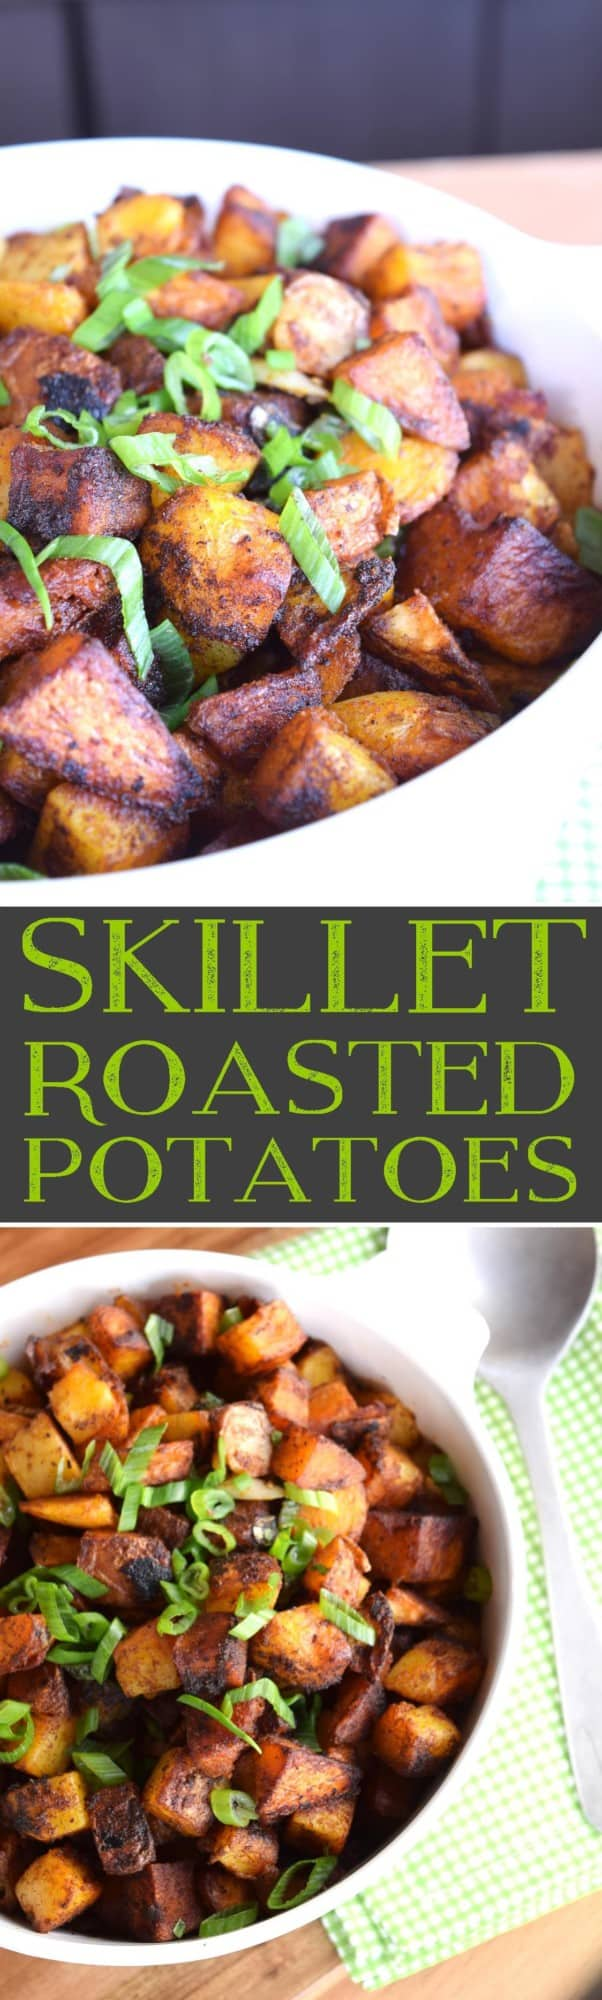 Skillet Roasted Potatoes 2